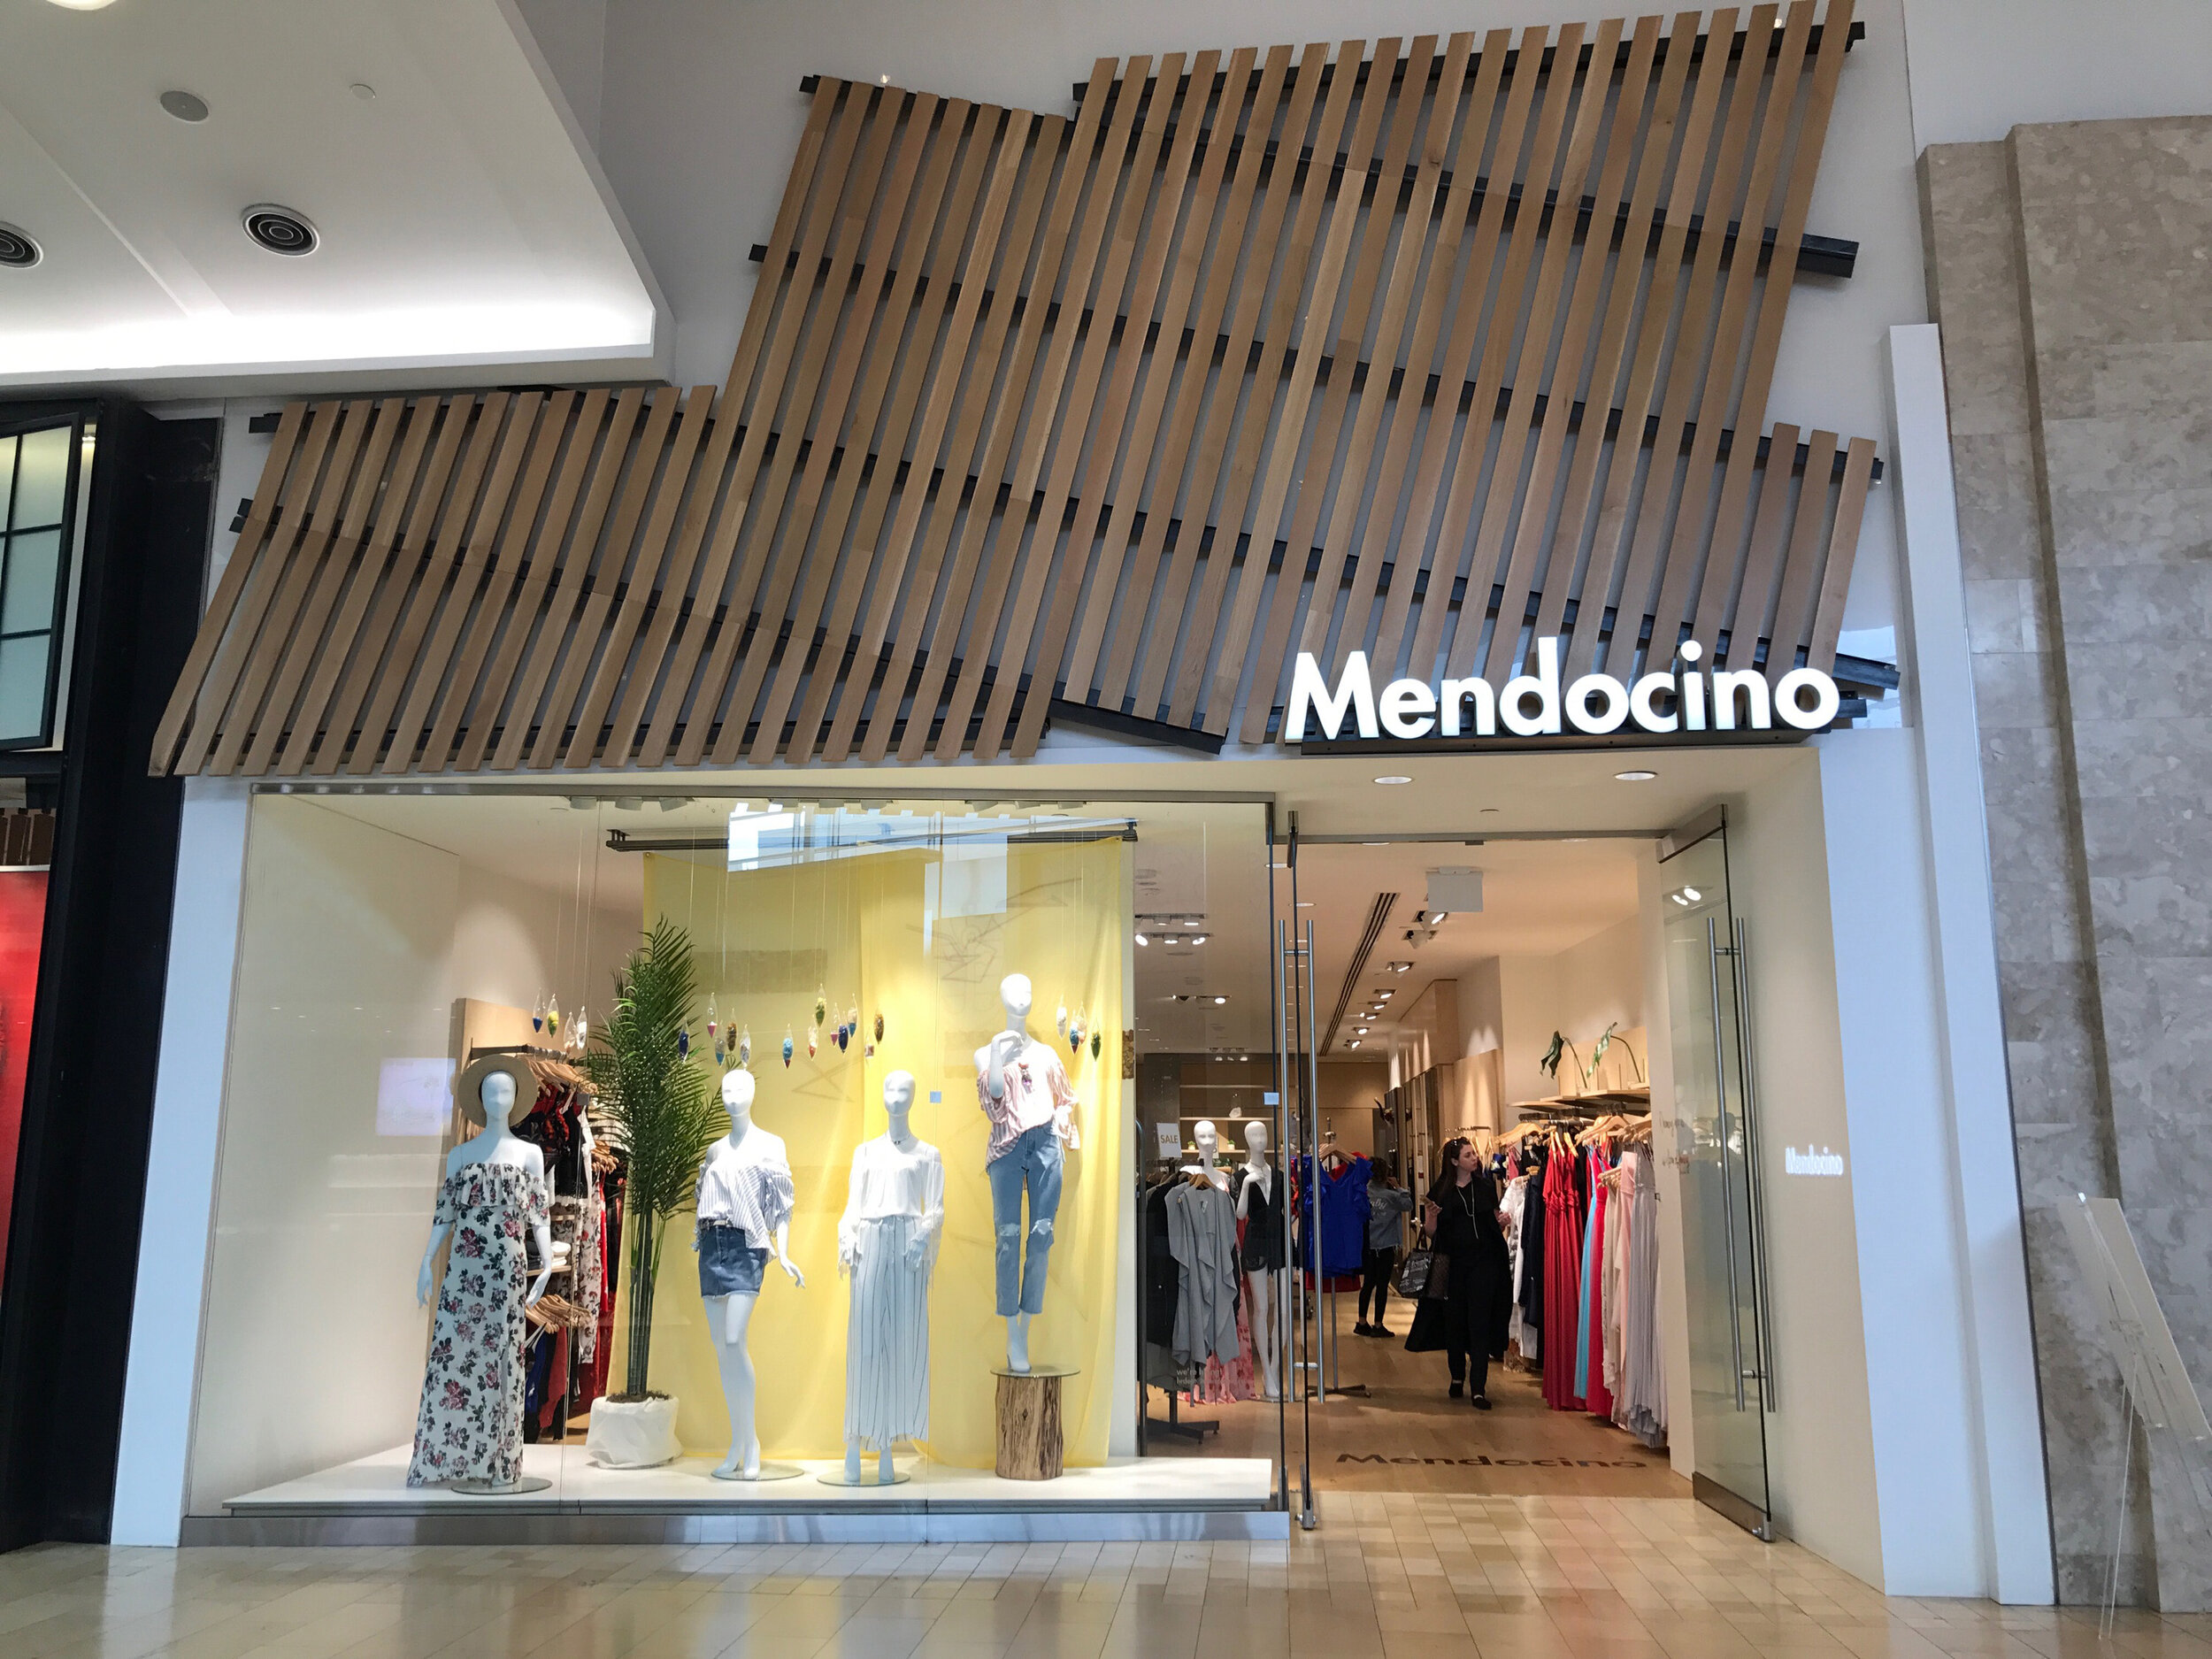 Canadian Fashion Retailer Mendocino To Permanently Shut Stores Amid Insolvency